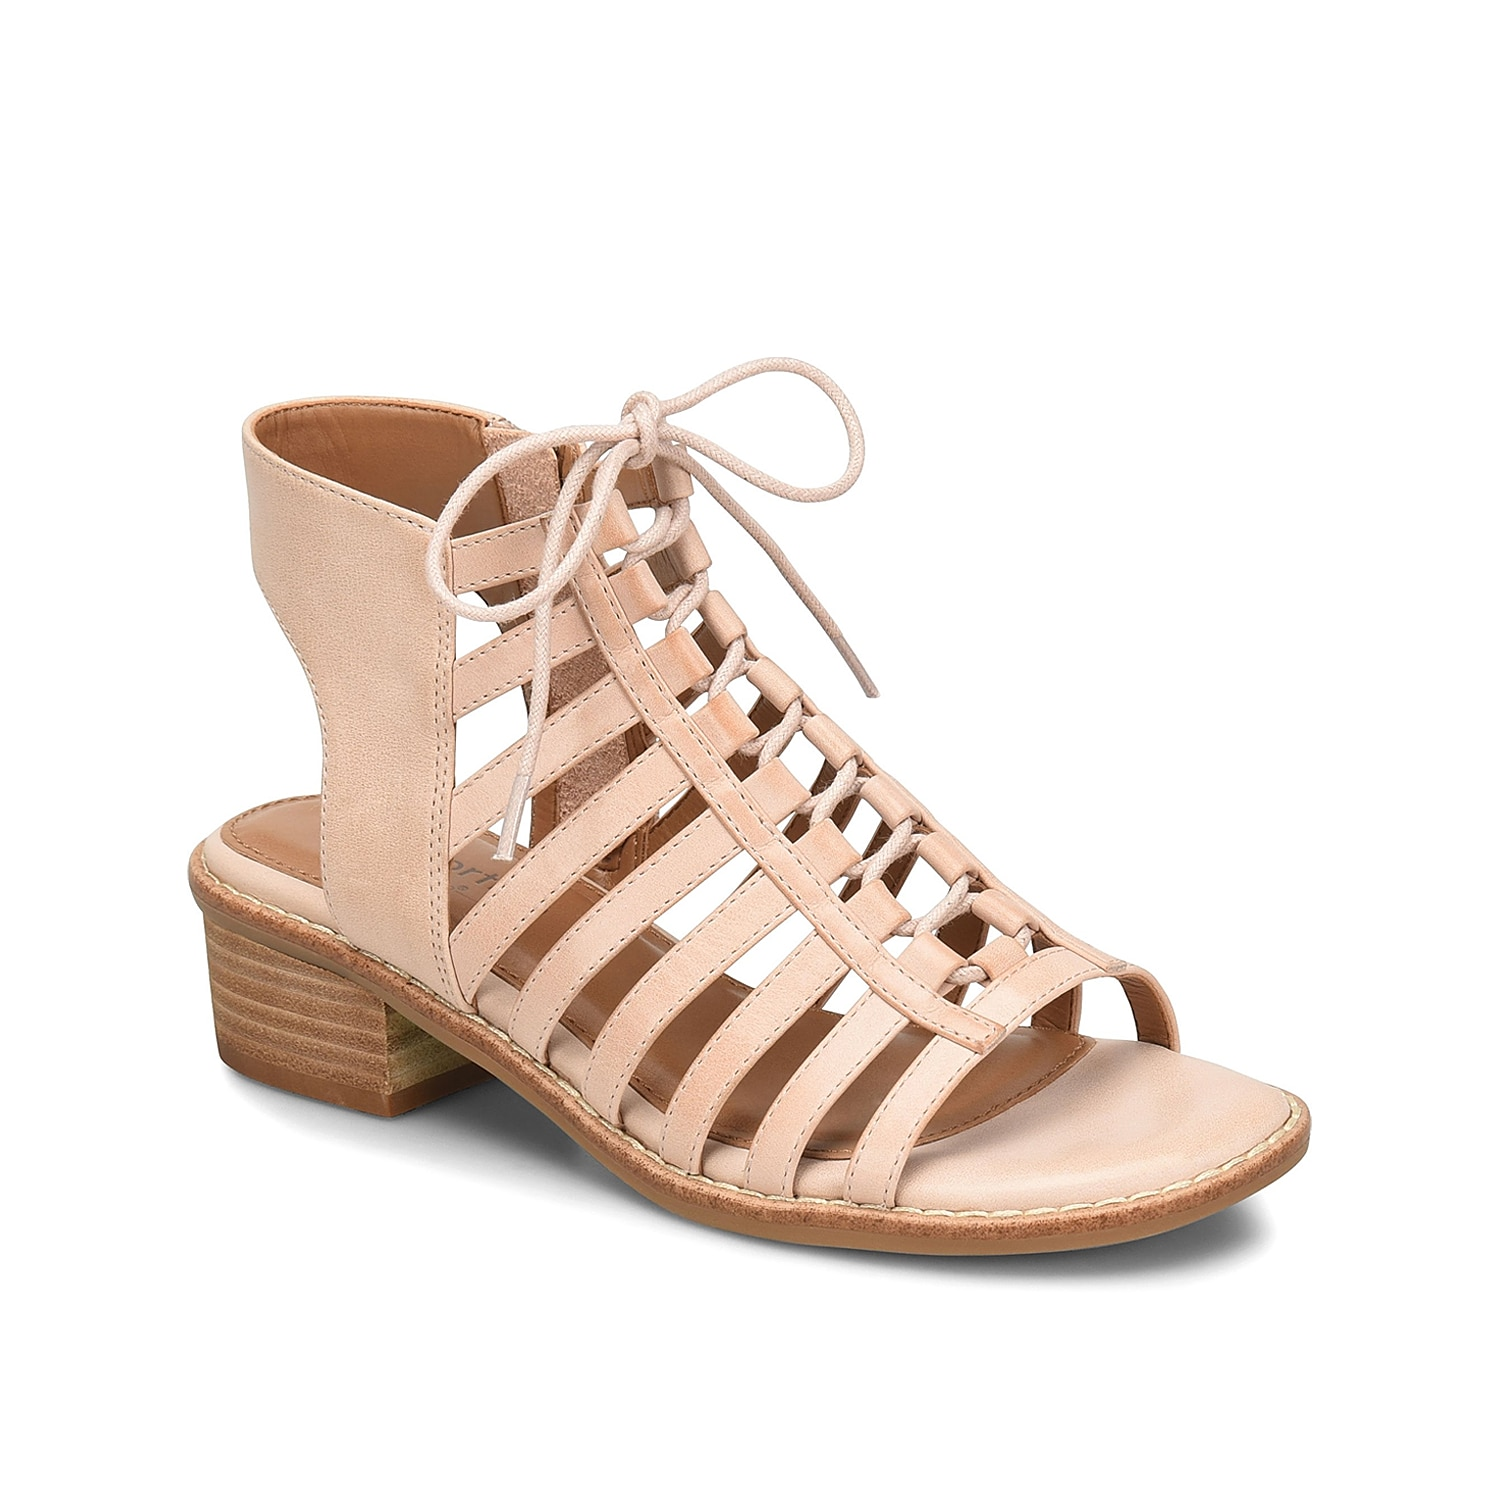 Trendy style can be comfortable! The Blossom gladiator sandal from Comfortiva features ghillie lacing and a block heel that boosts this pair for a look that you\\\'ll love rocking all summer long.